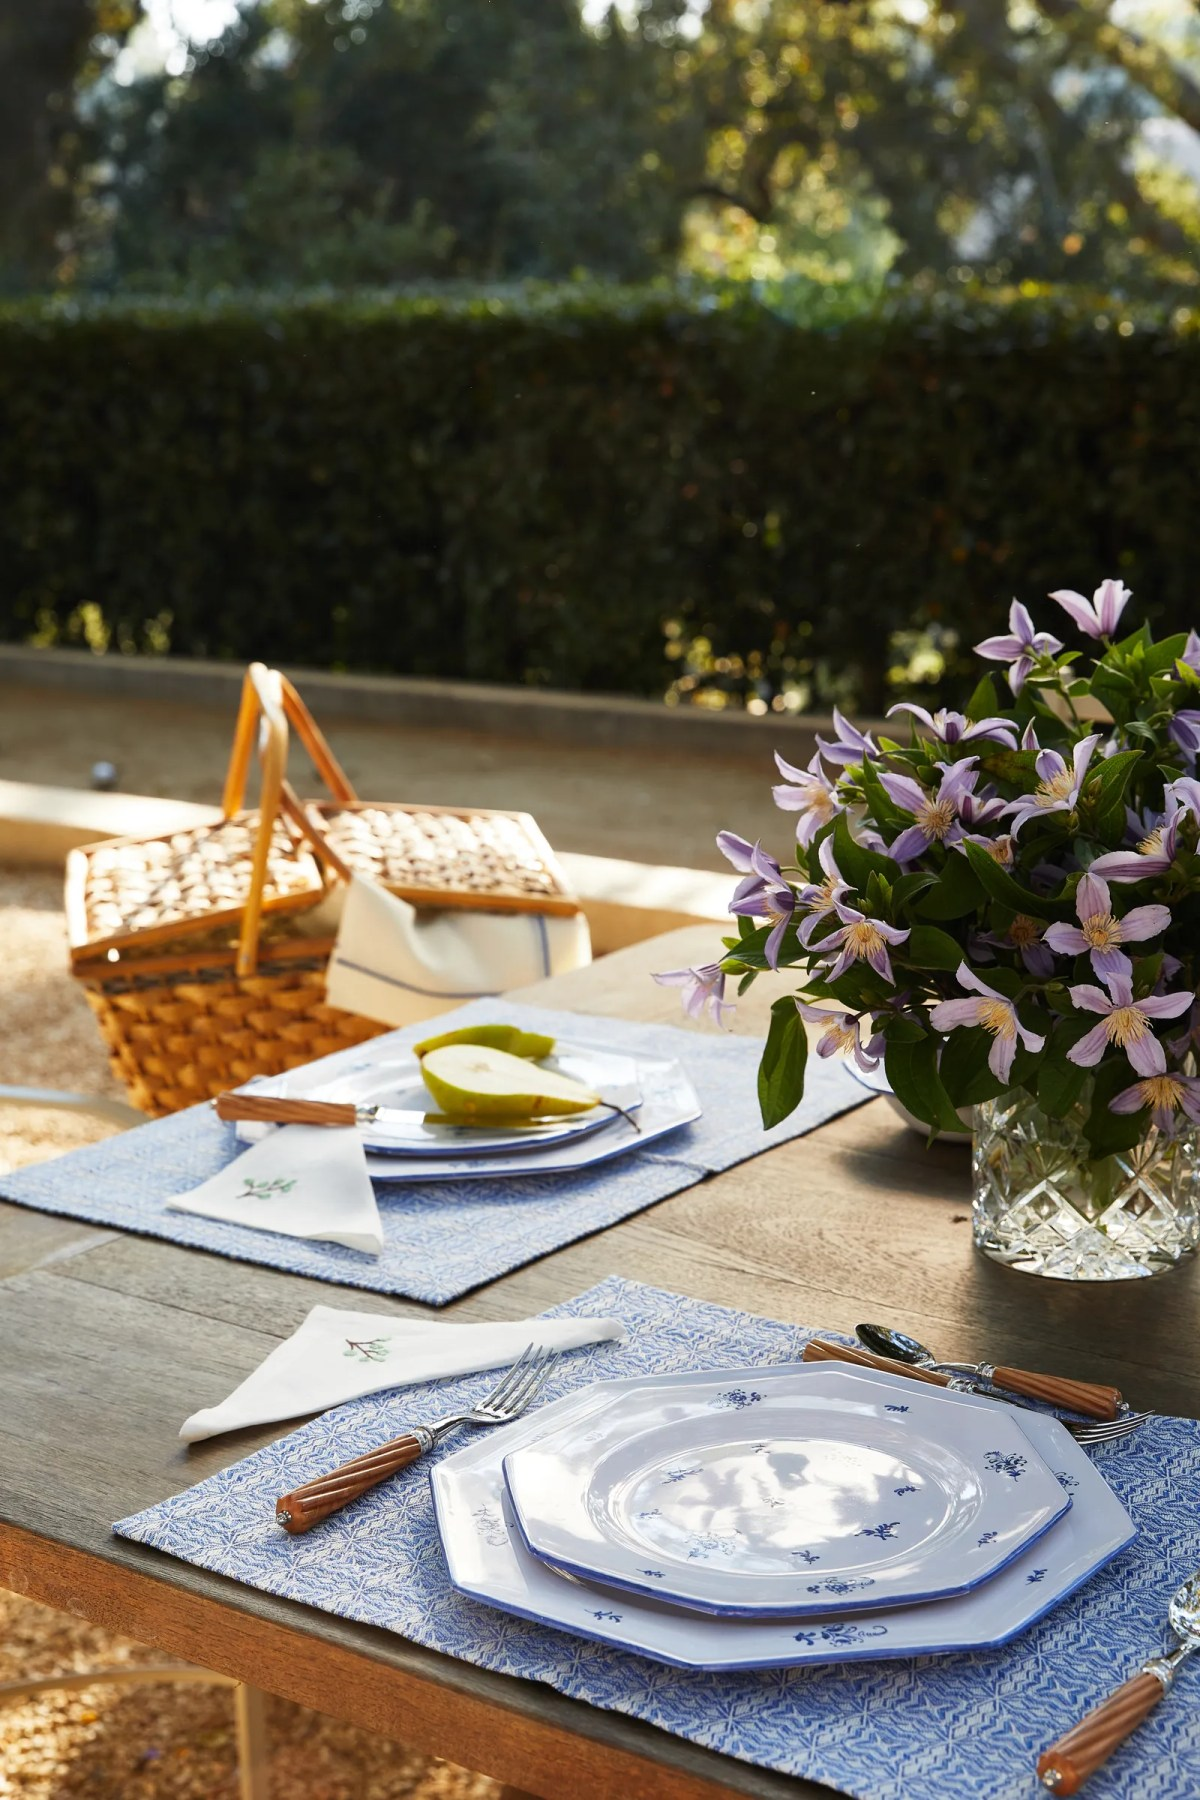 A Givenchy Scion Launches a CountryChic Home Goods Firm